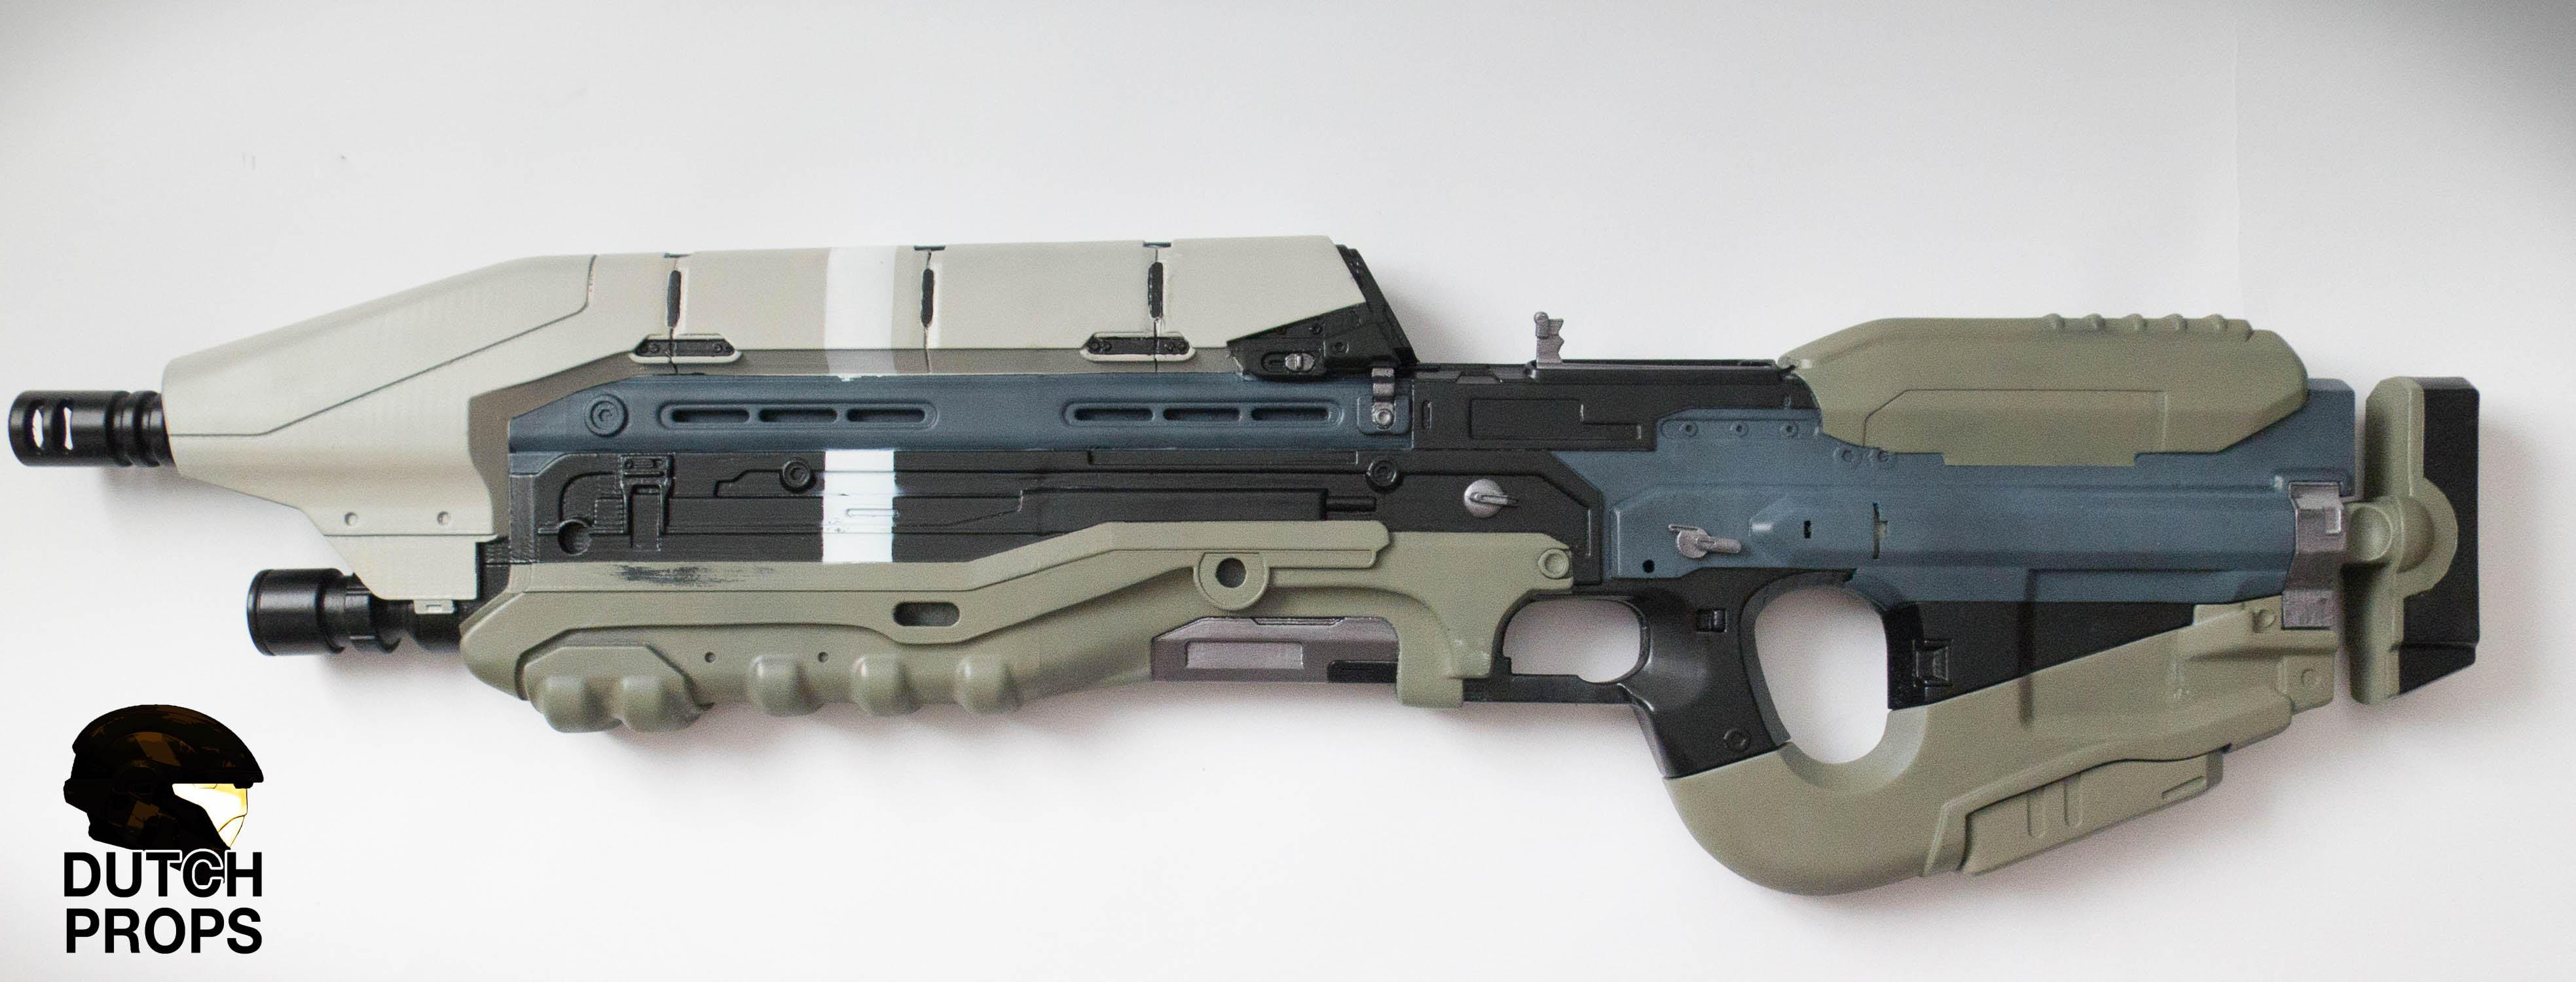 This coming october halo fans everywhere have something significant